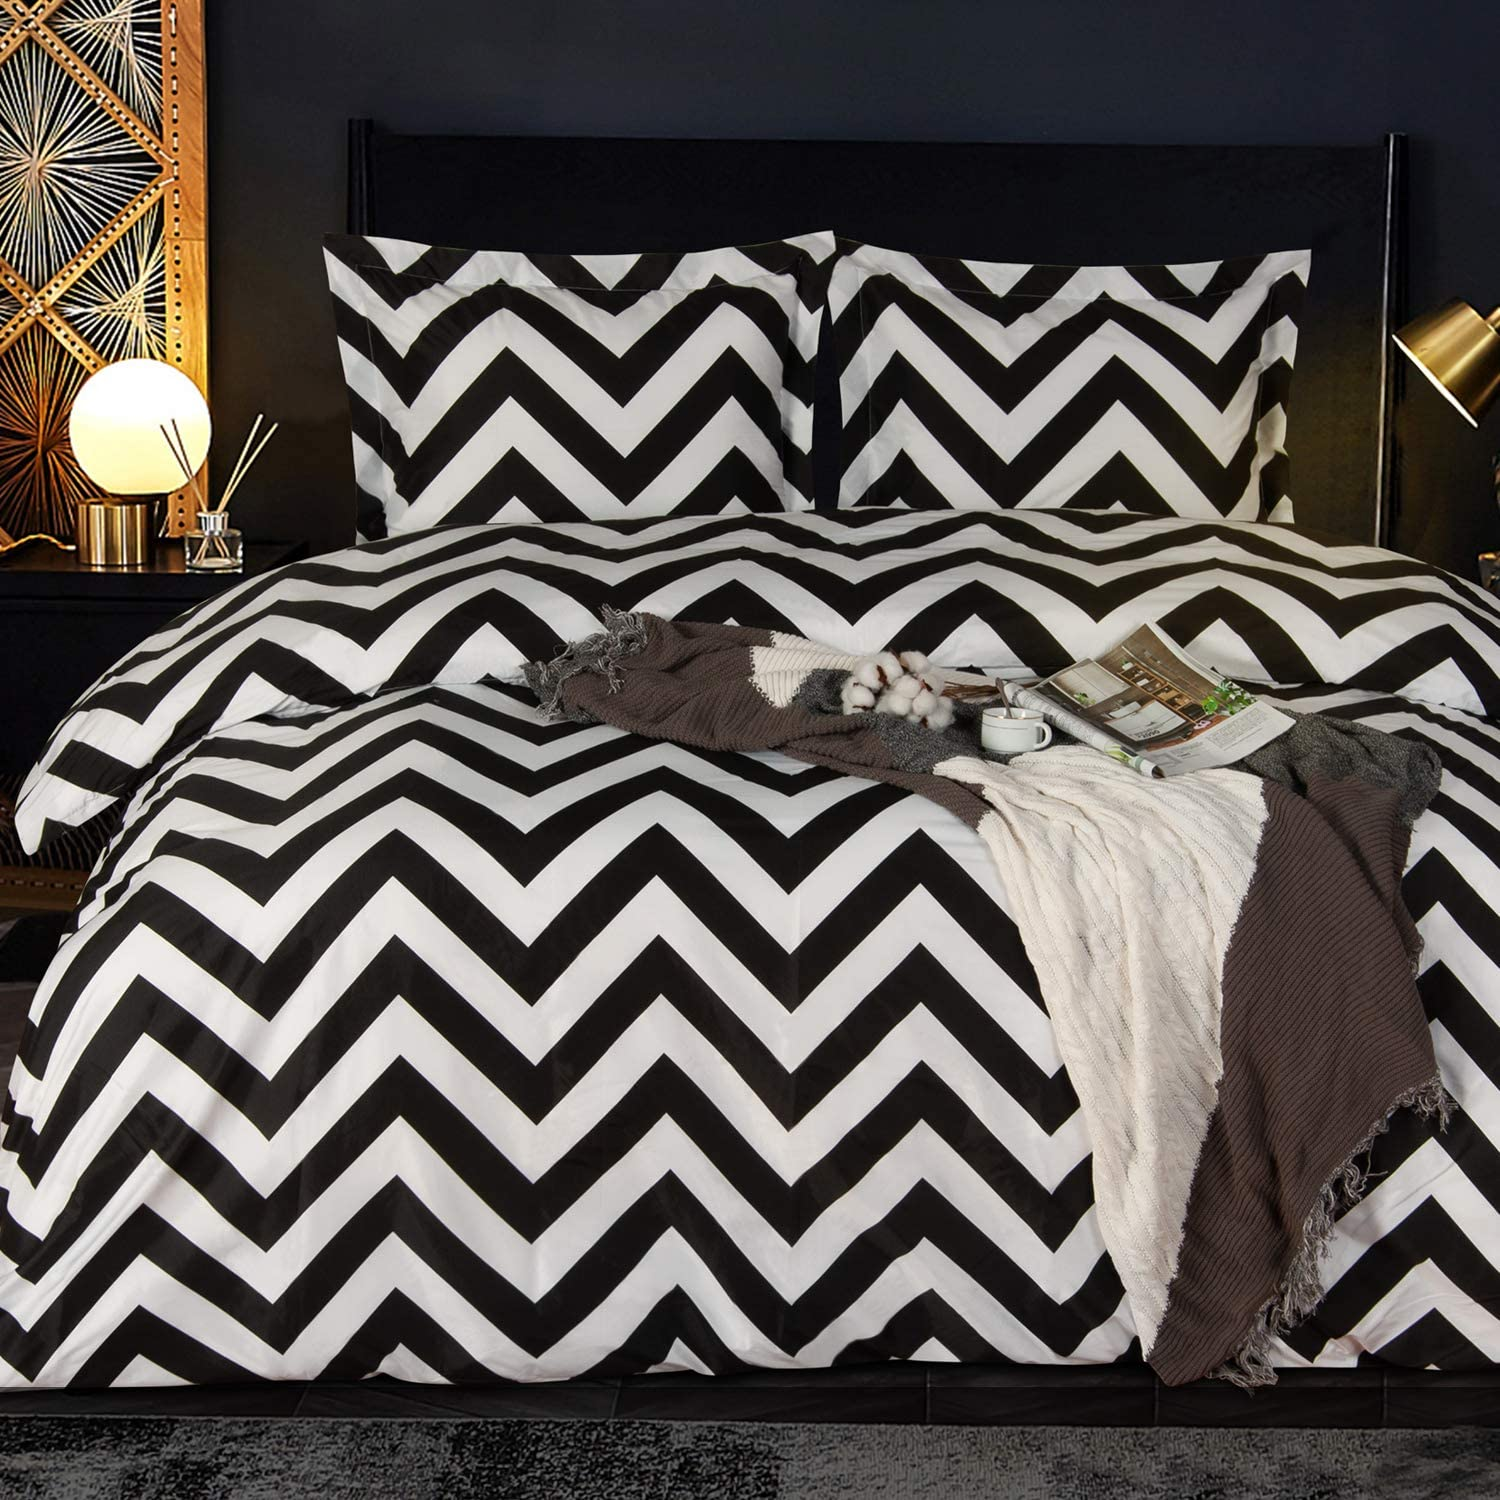 NTBAY Microfiber Kid's Duvet Cover Set, 2 Pieces Ultra Soft Zipper Closure Black and White Bedding Set, Twin Size, Chevron